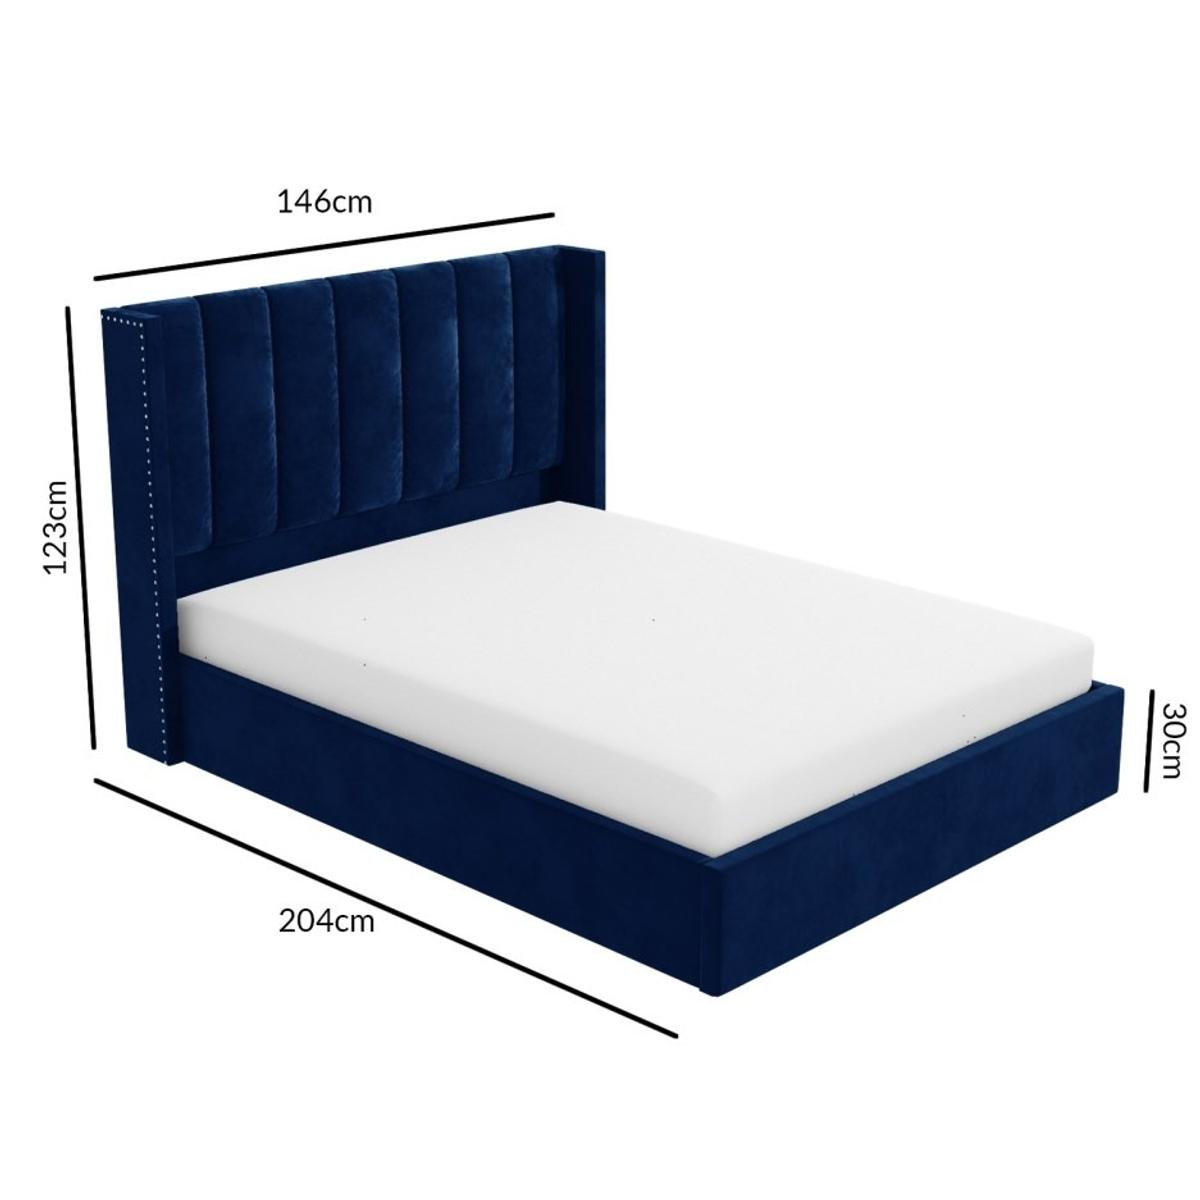 Maddox Wing Back Double Ottoman Bed In Navy In Hd2 Huddersfield For 359 97 For Sale Shpock